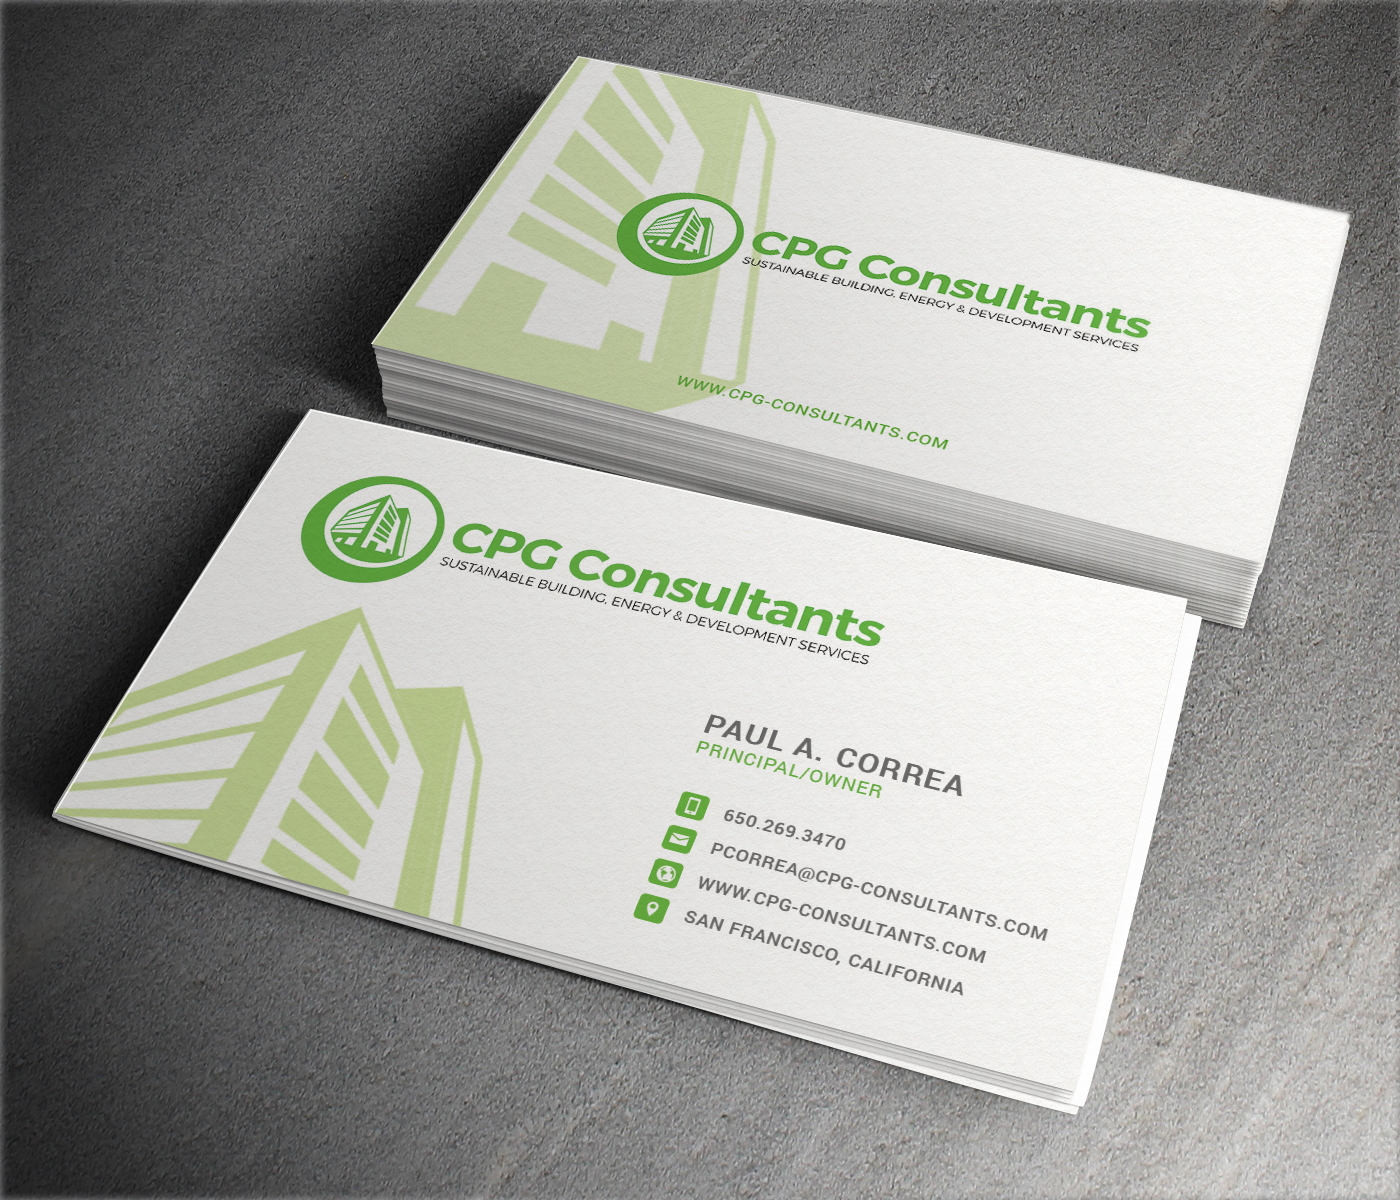 Elegant playful real estate business card design for cpg business card design by themedesk technology for cpg consultants design 5771048 colourmoves